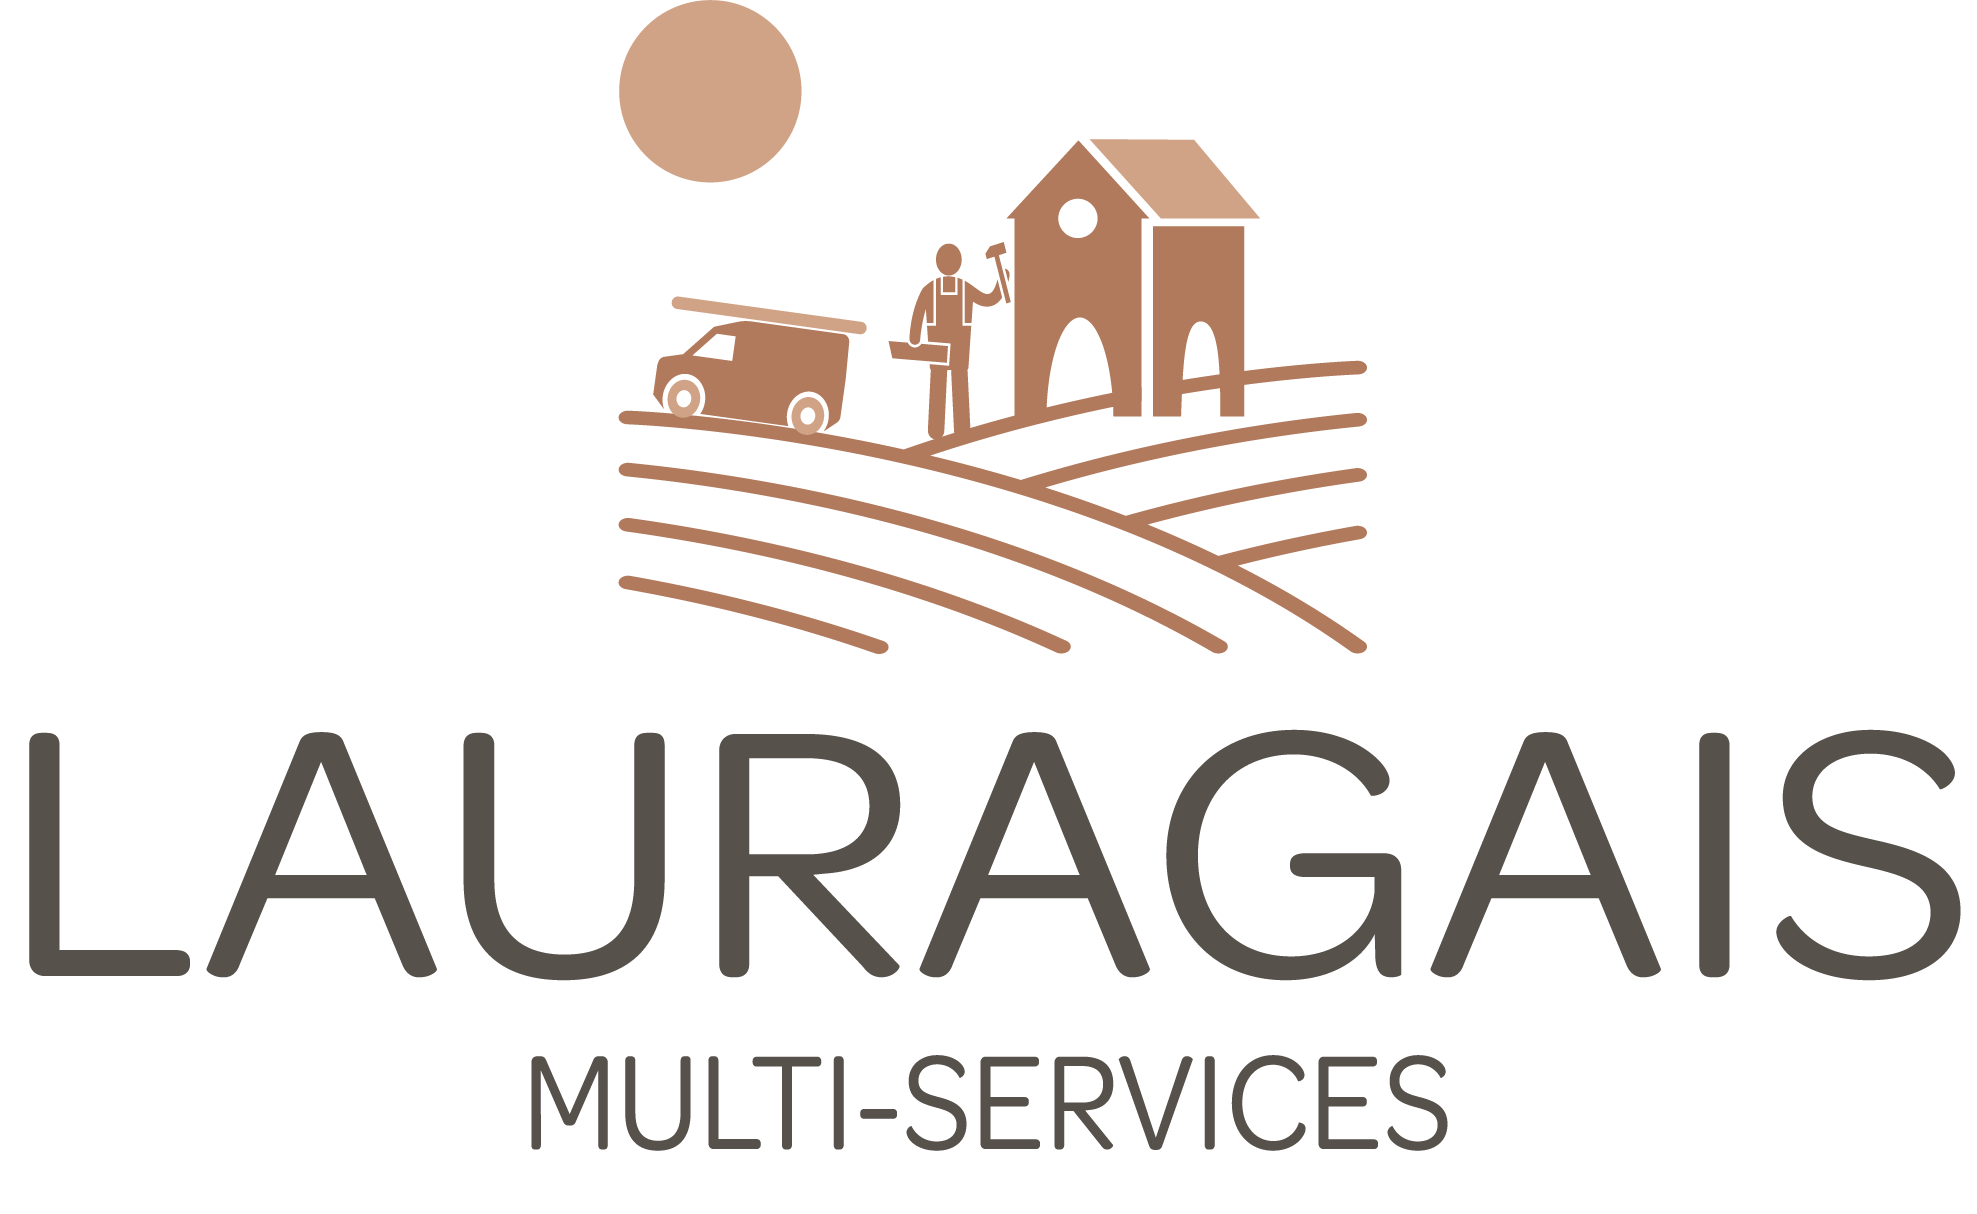 Lauragais Multi Services